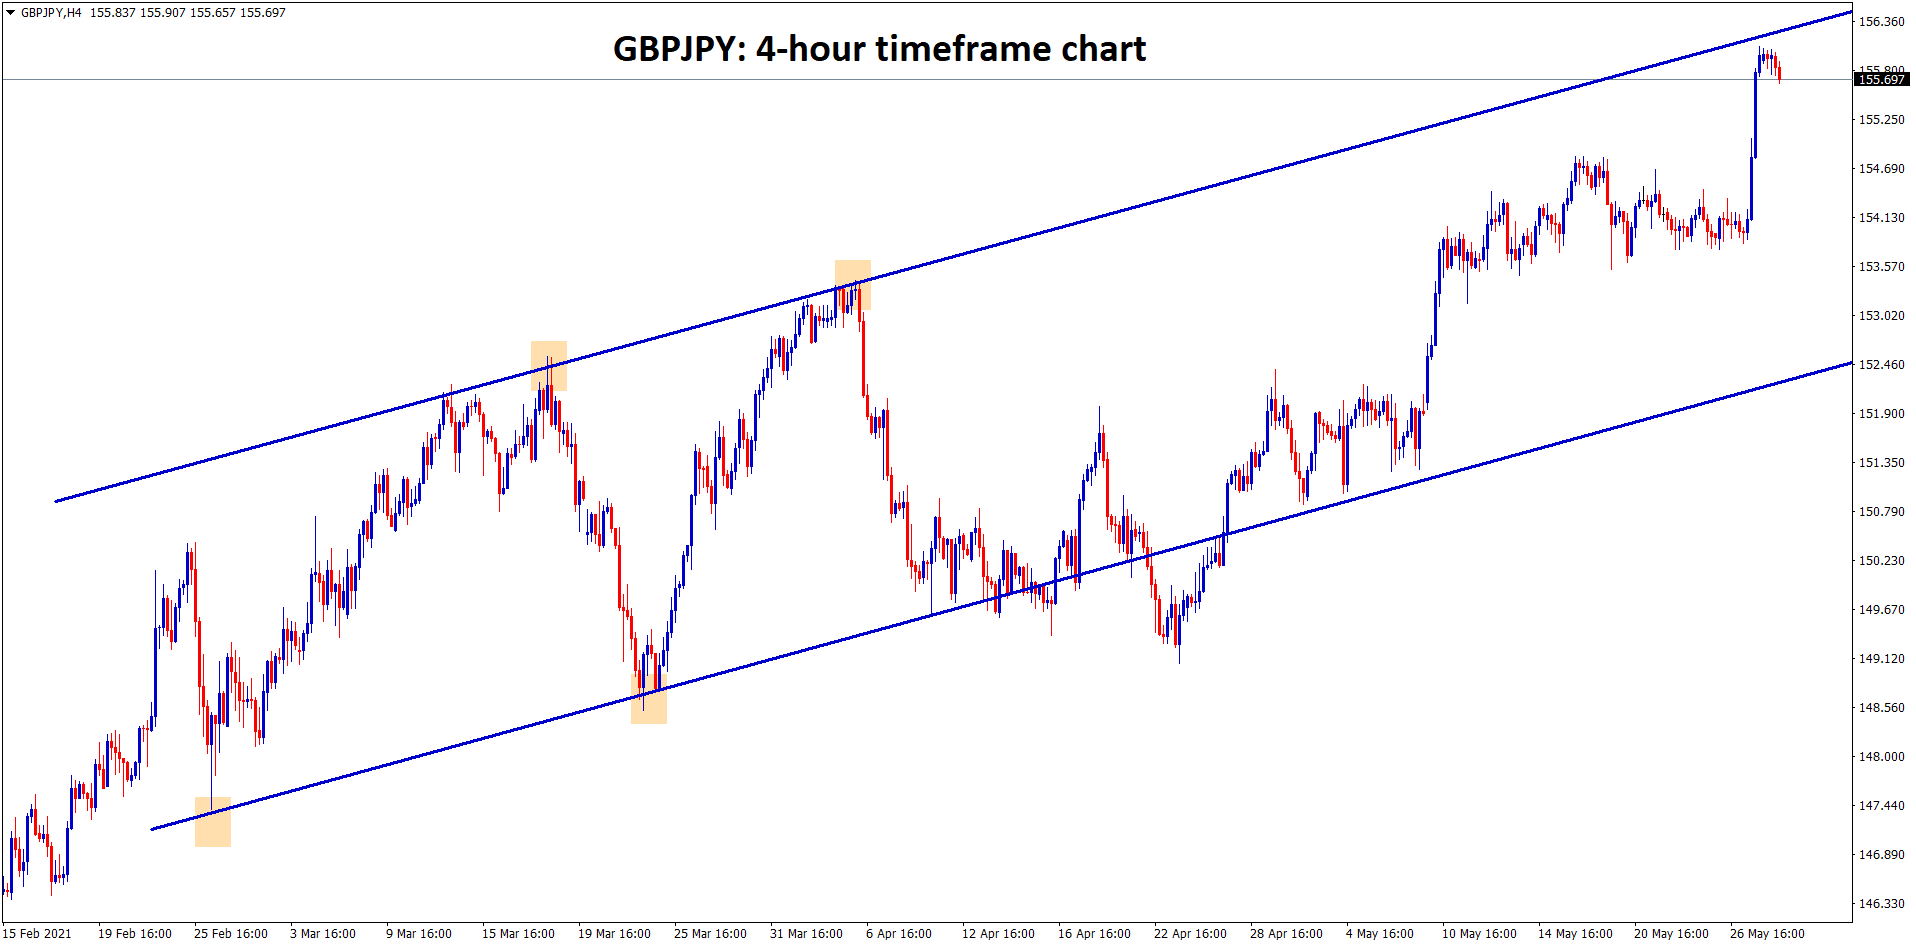 GBPJPY hits the top higher high zone of the uptrend line